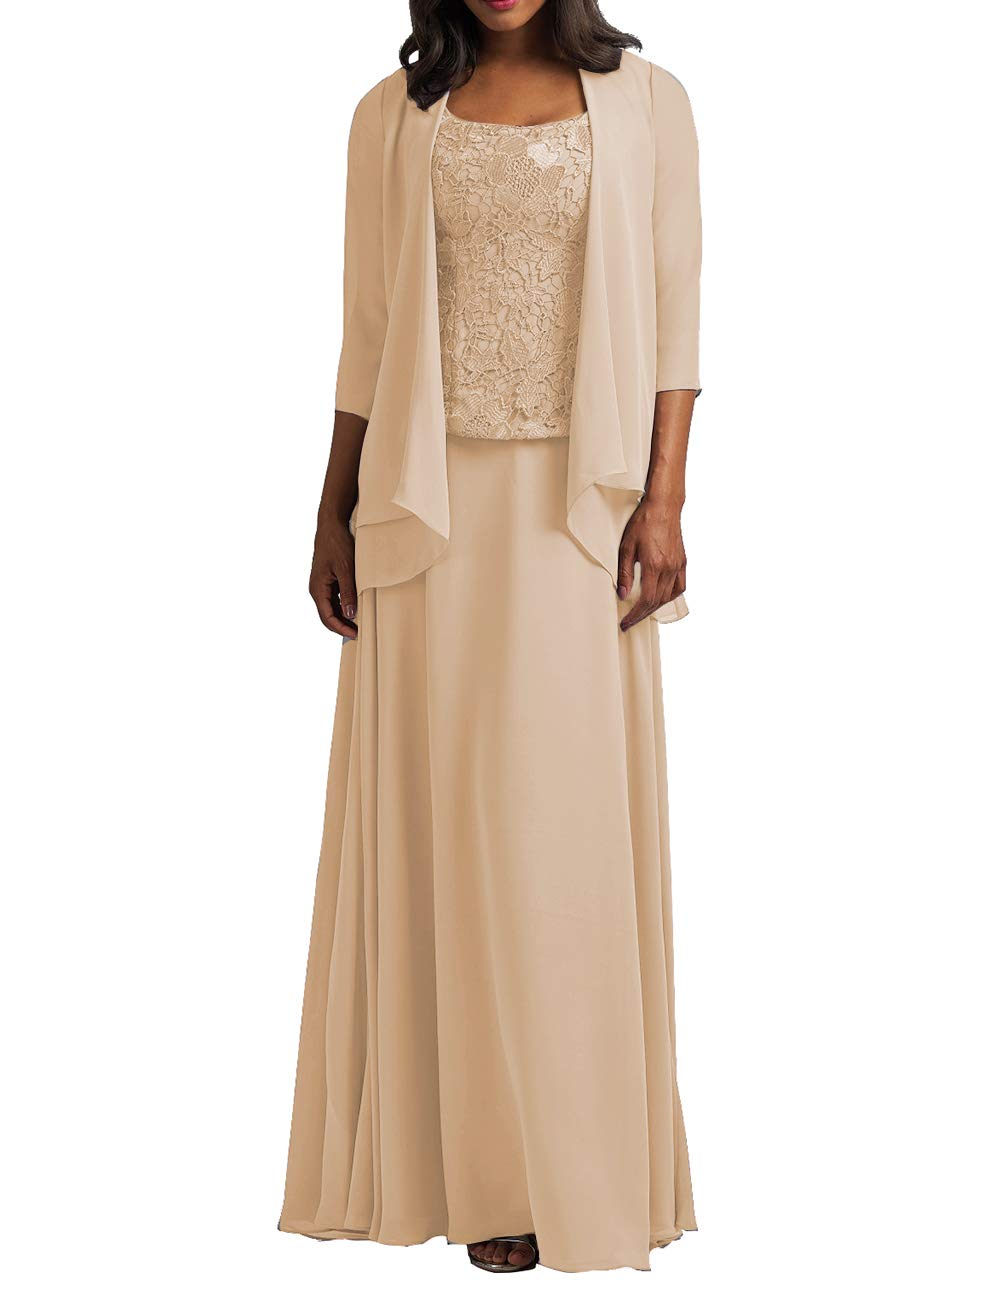 74355eed0f Chiffon Mother of The Bride Dress with Jacket Lace Prom Dress Formal  Evening Gowns Long Plus Size Champagne US 24W